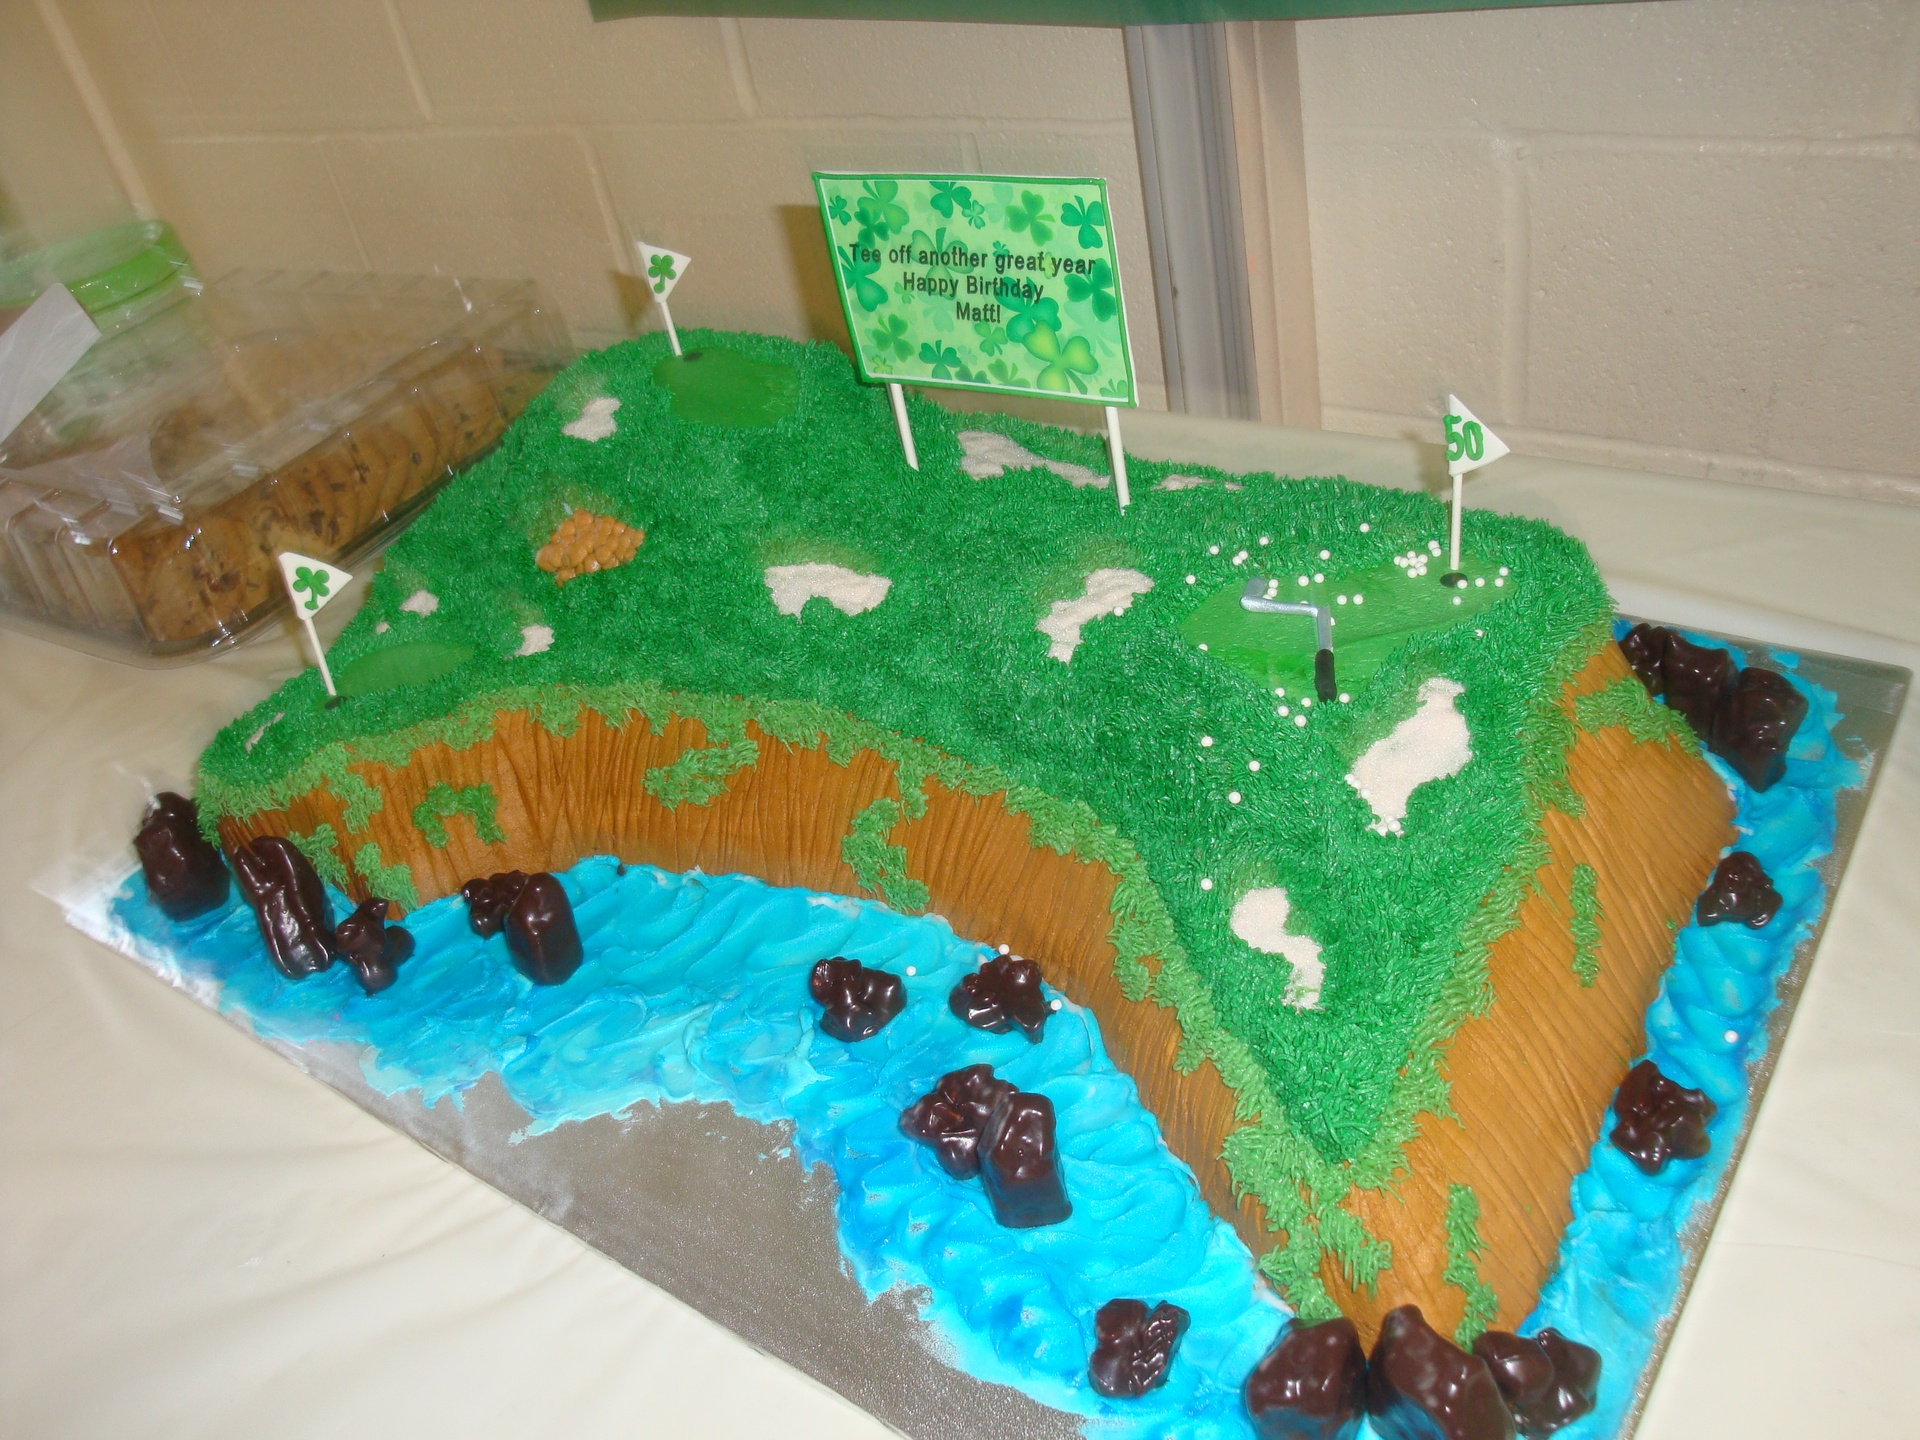 60 serving pebble beach golf cake $4/serving